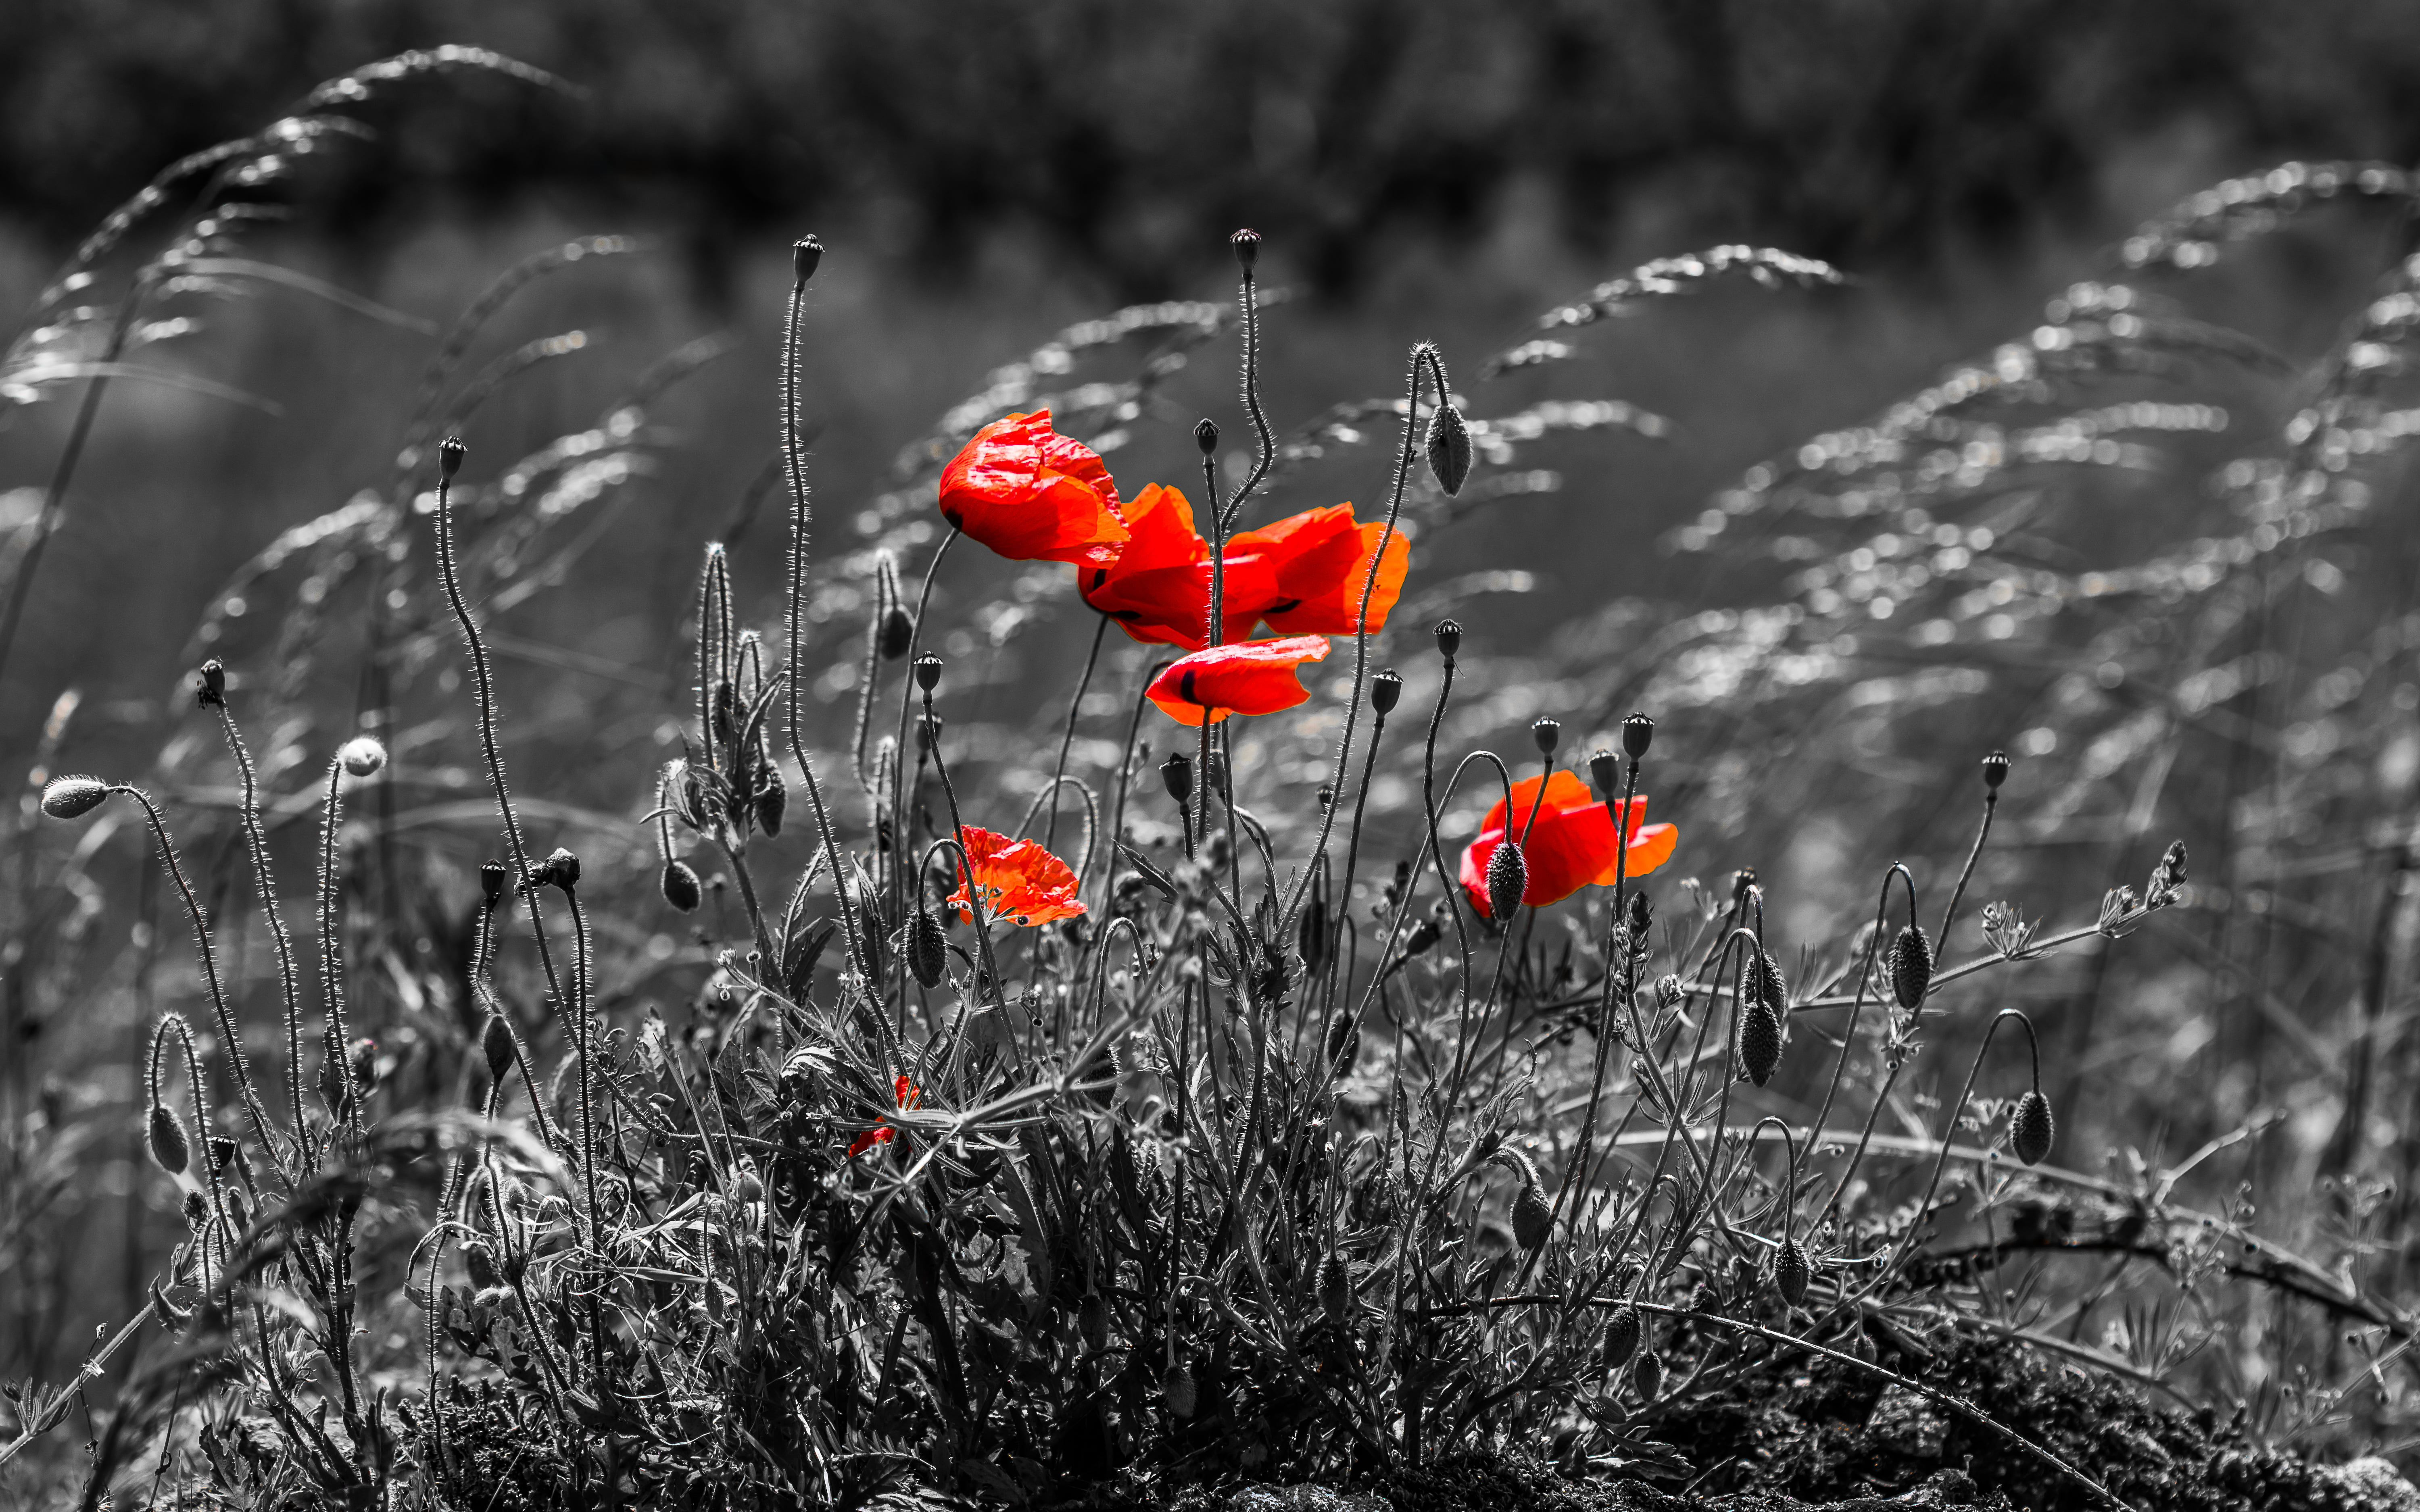 Poppy Wallpaper For Iphone Gray Scale Photo Of Red Flowers Hd Wallpaper Wallpaper Flare